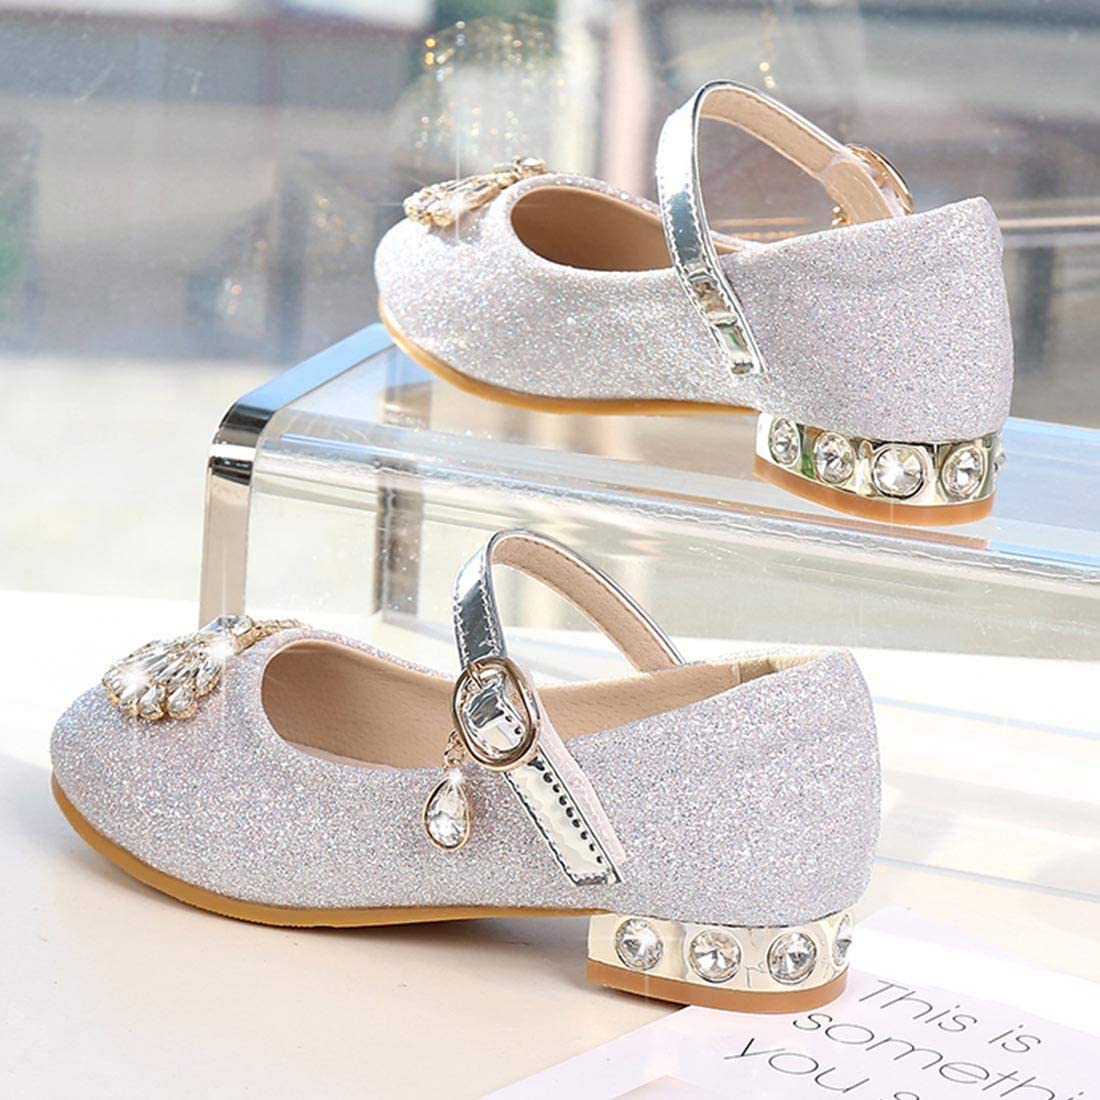 YIBLBOX Toddler Girls Glitter Mary Janes Kids Princess Shoes for Wedding Party Dress Low Heel Sandals